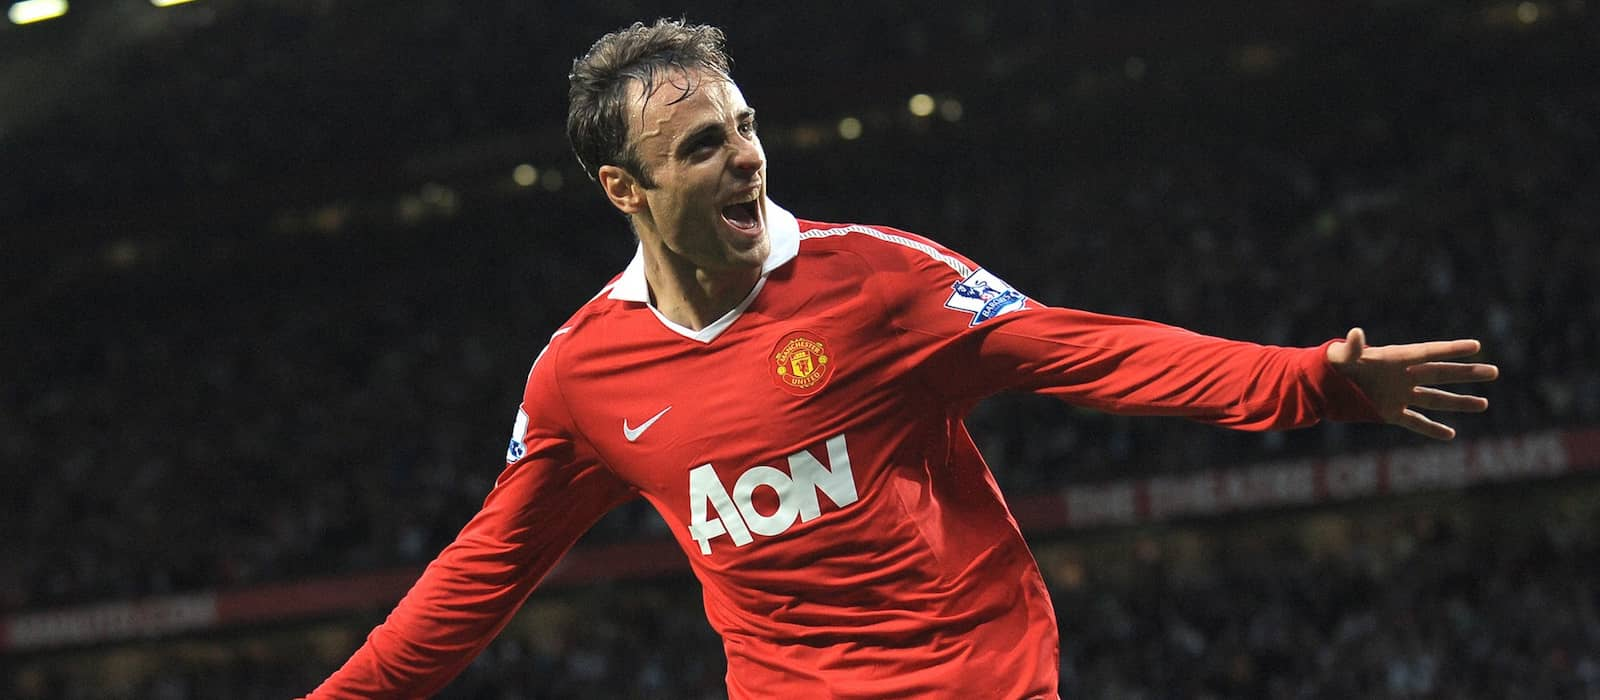 Dimitar Berbatov reveals Manchester United's underrated players of his time